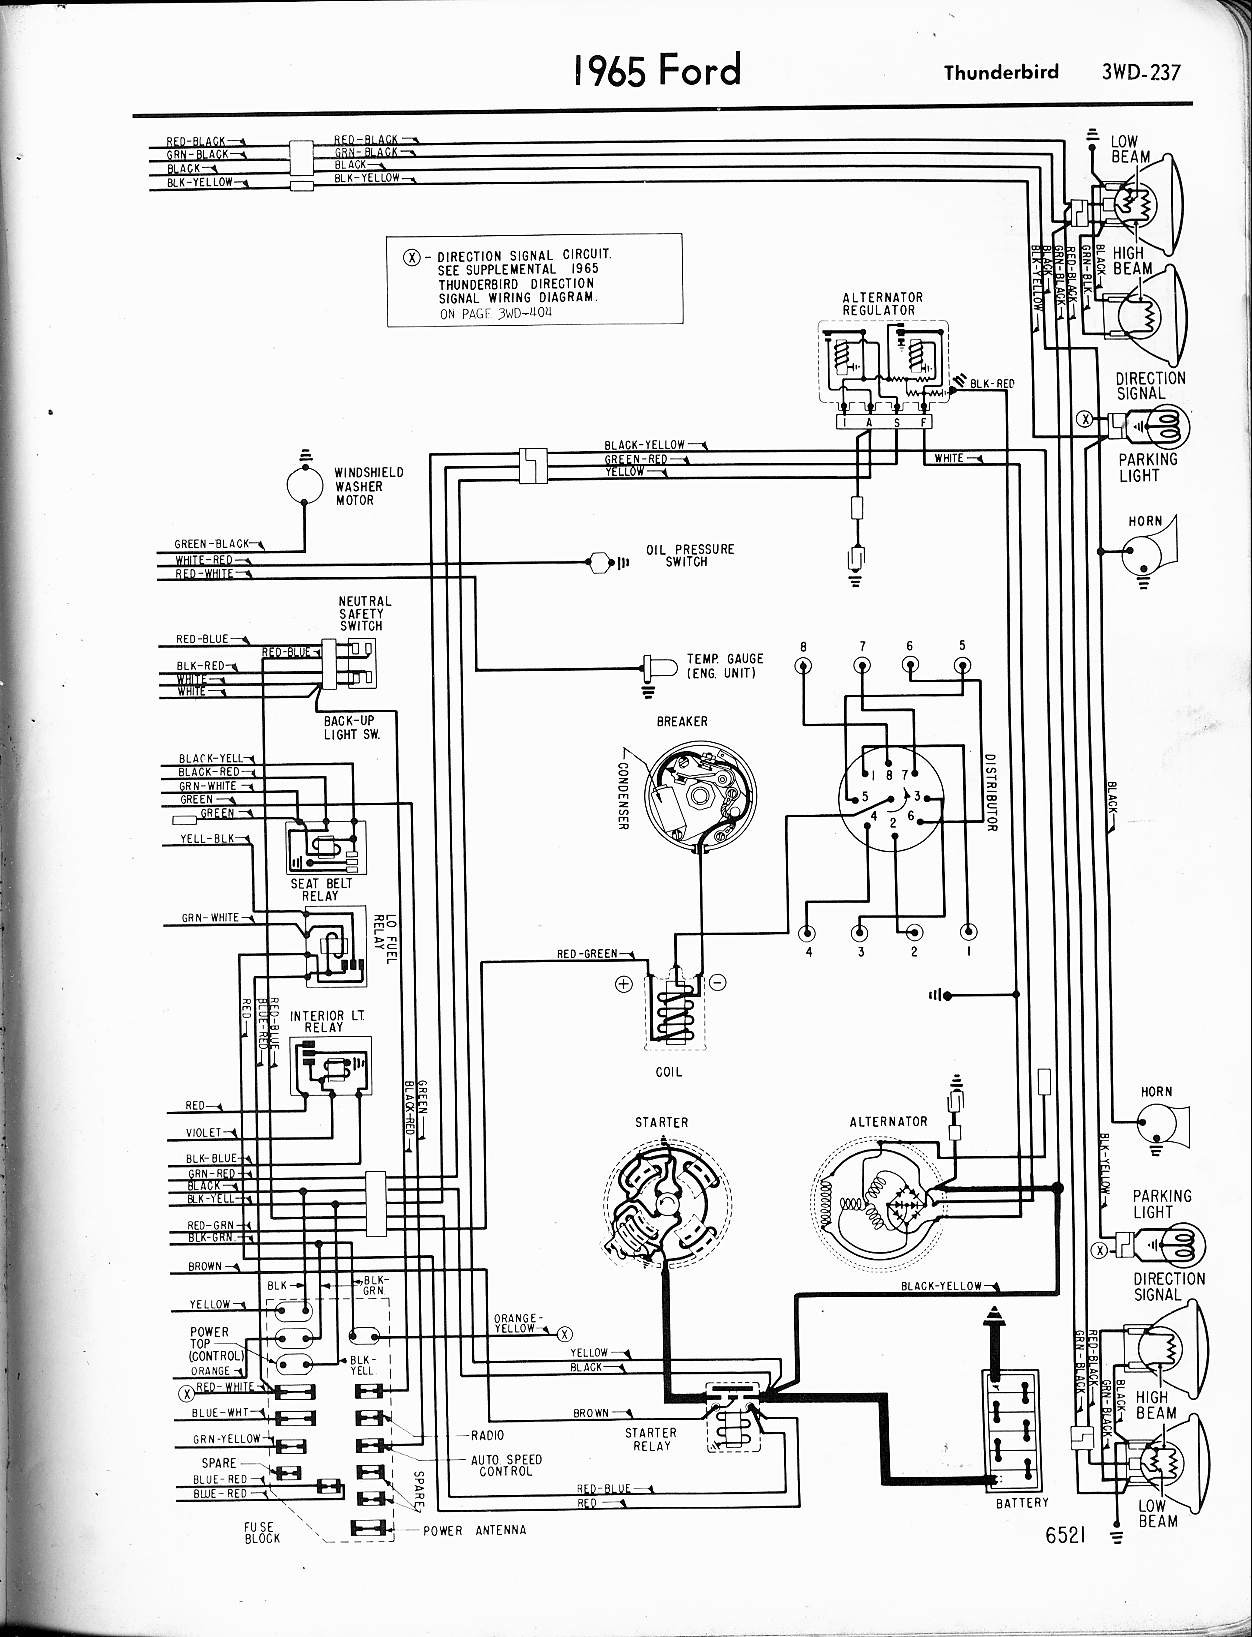 1986 Ford Thunderbird Radio Wiring Diagram Content Resource Of F 250 For 1963 1996 And Rh Rivcas Org 1966